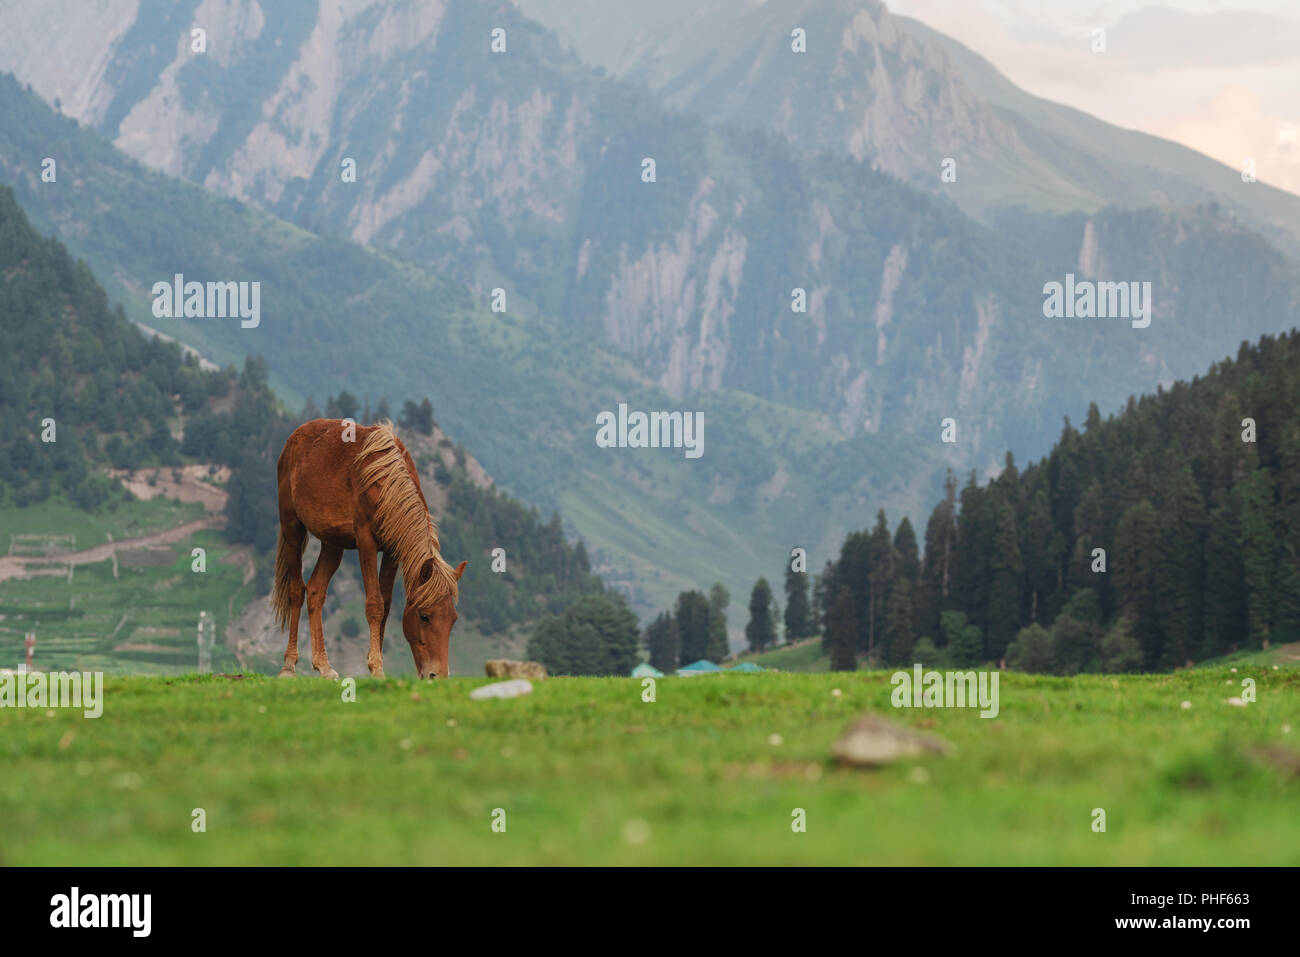 Horse grazing grass on meadow with mountain and forest view in the morning - Stock Image